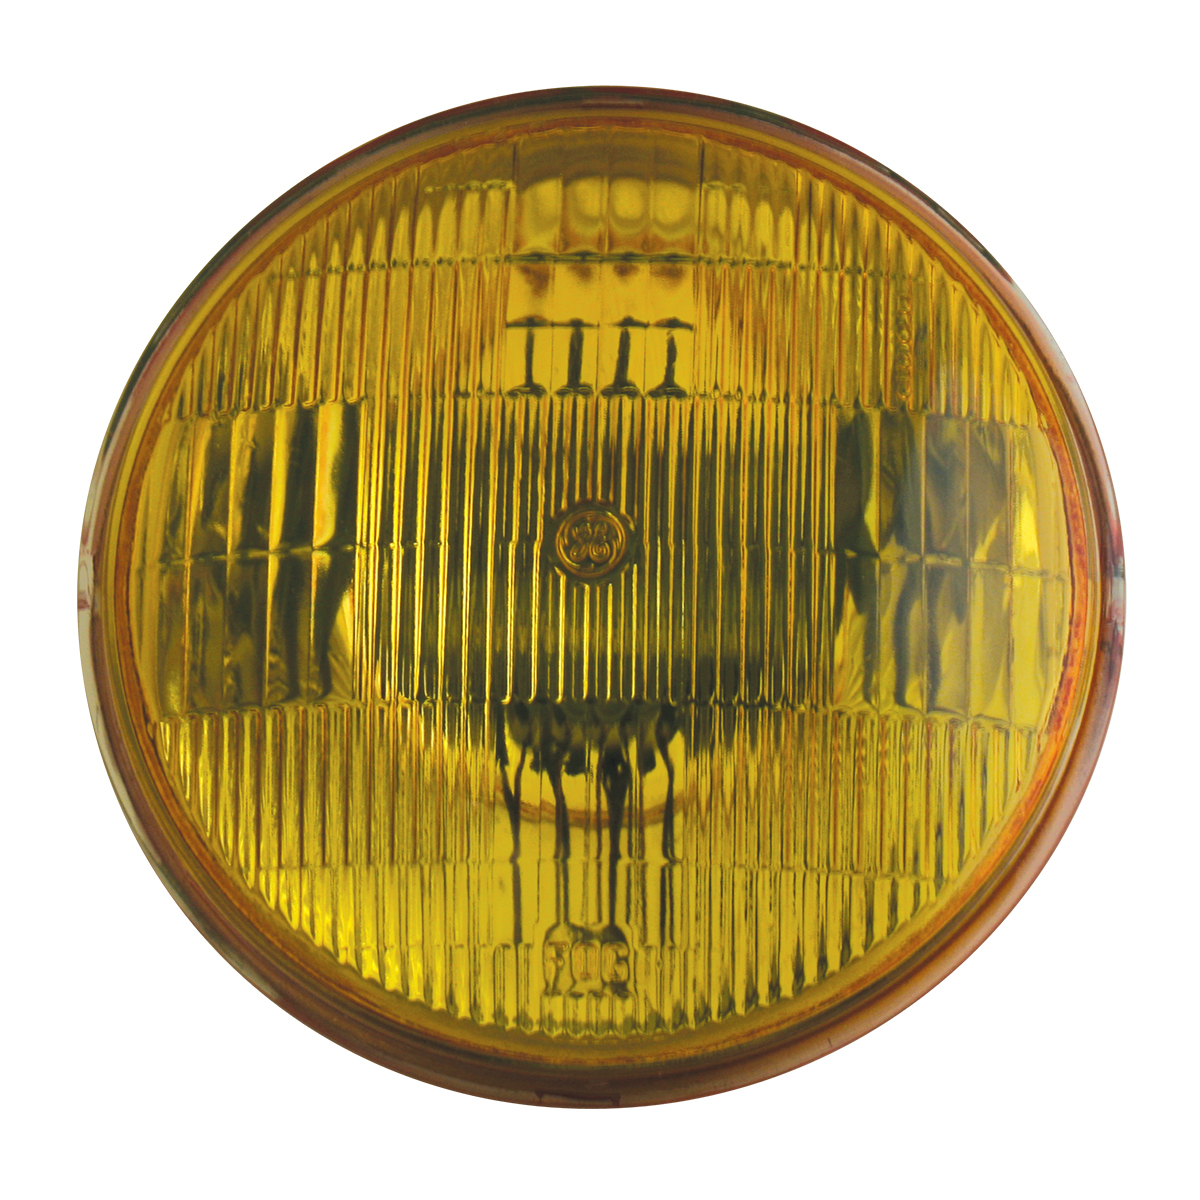 #80419 Round Sealed Beam #4412A Headlight - Amber